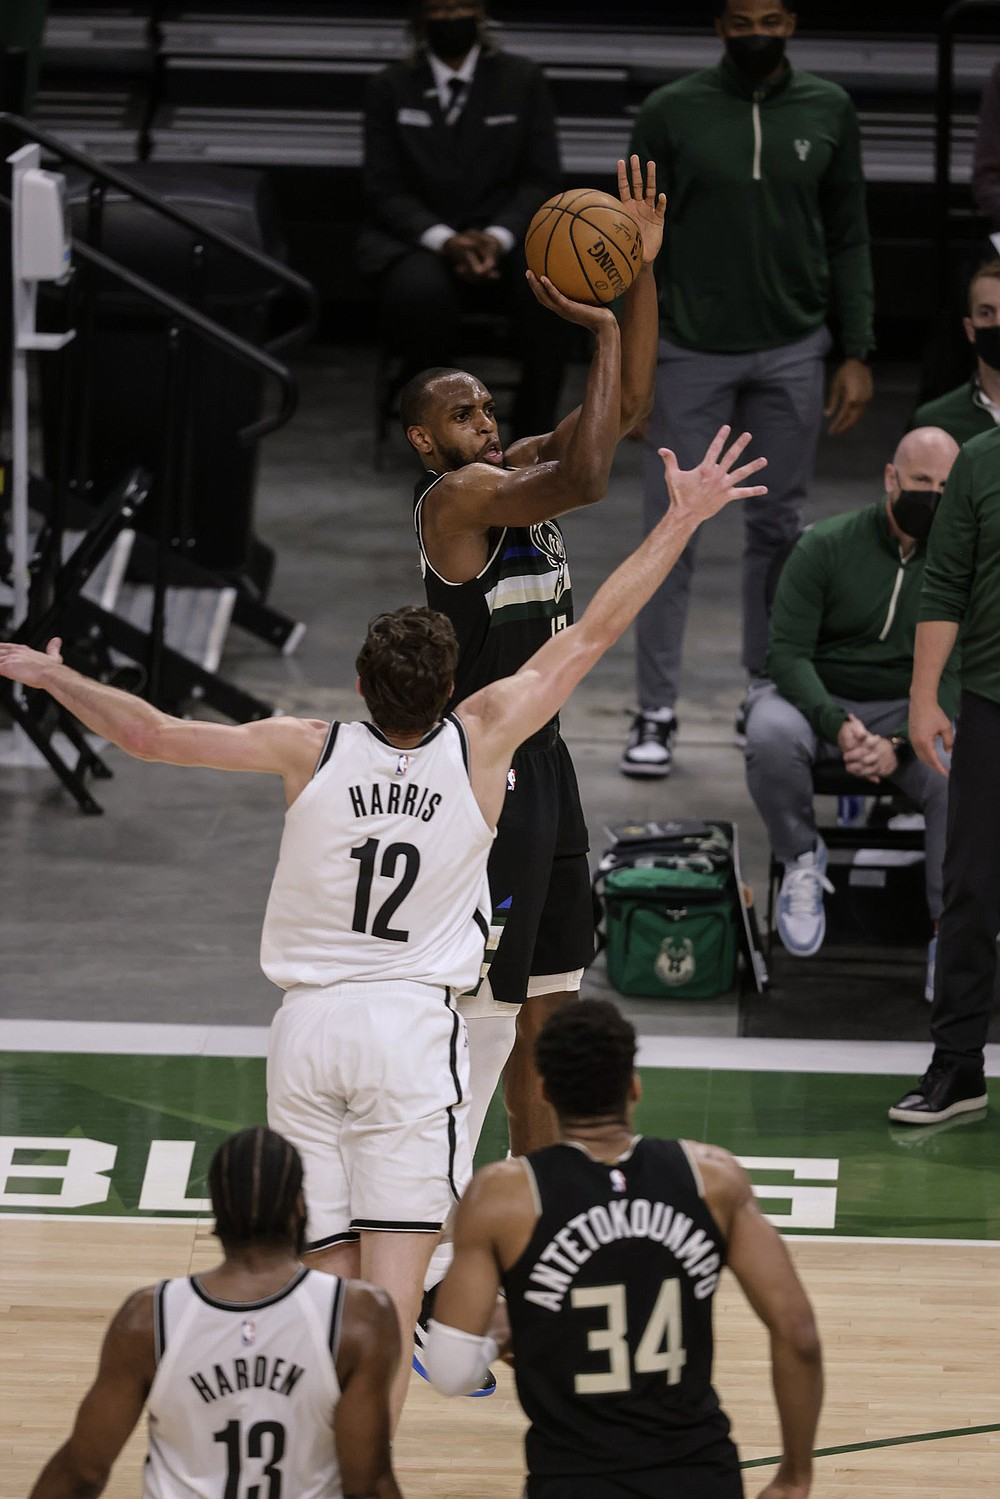 Milwaukee forward Khris Middleton shoots over Brooklyn forward Joe Harris (12) on Thursday during the Bucks' 104-89 victory over the Nets in Milwaukee. Middleton scored a game-high 38 points for the Bucks, who forced a Game 7 in their NBA Eastern Conference semifinal series Saturday. (AP/Jeffrey Phelps)